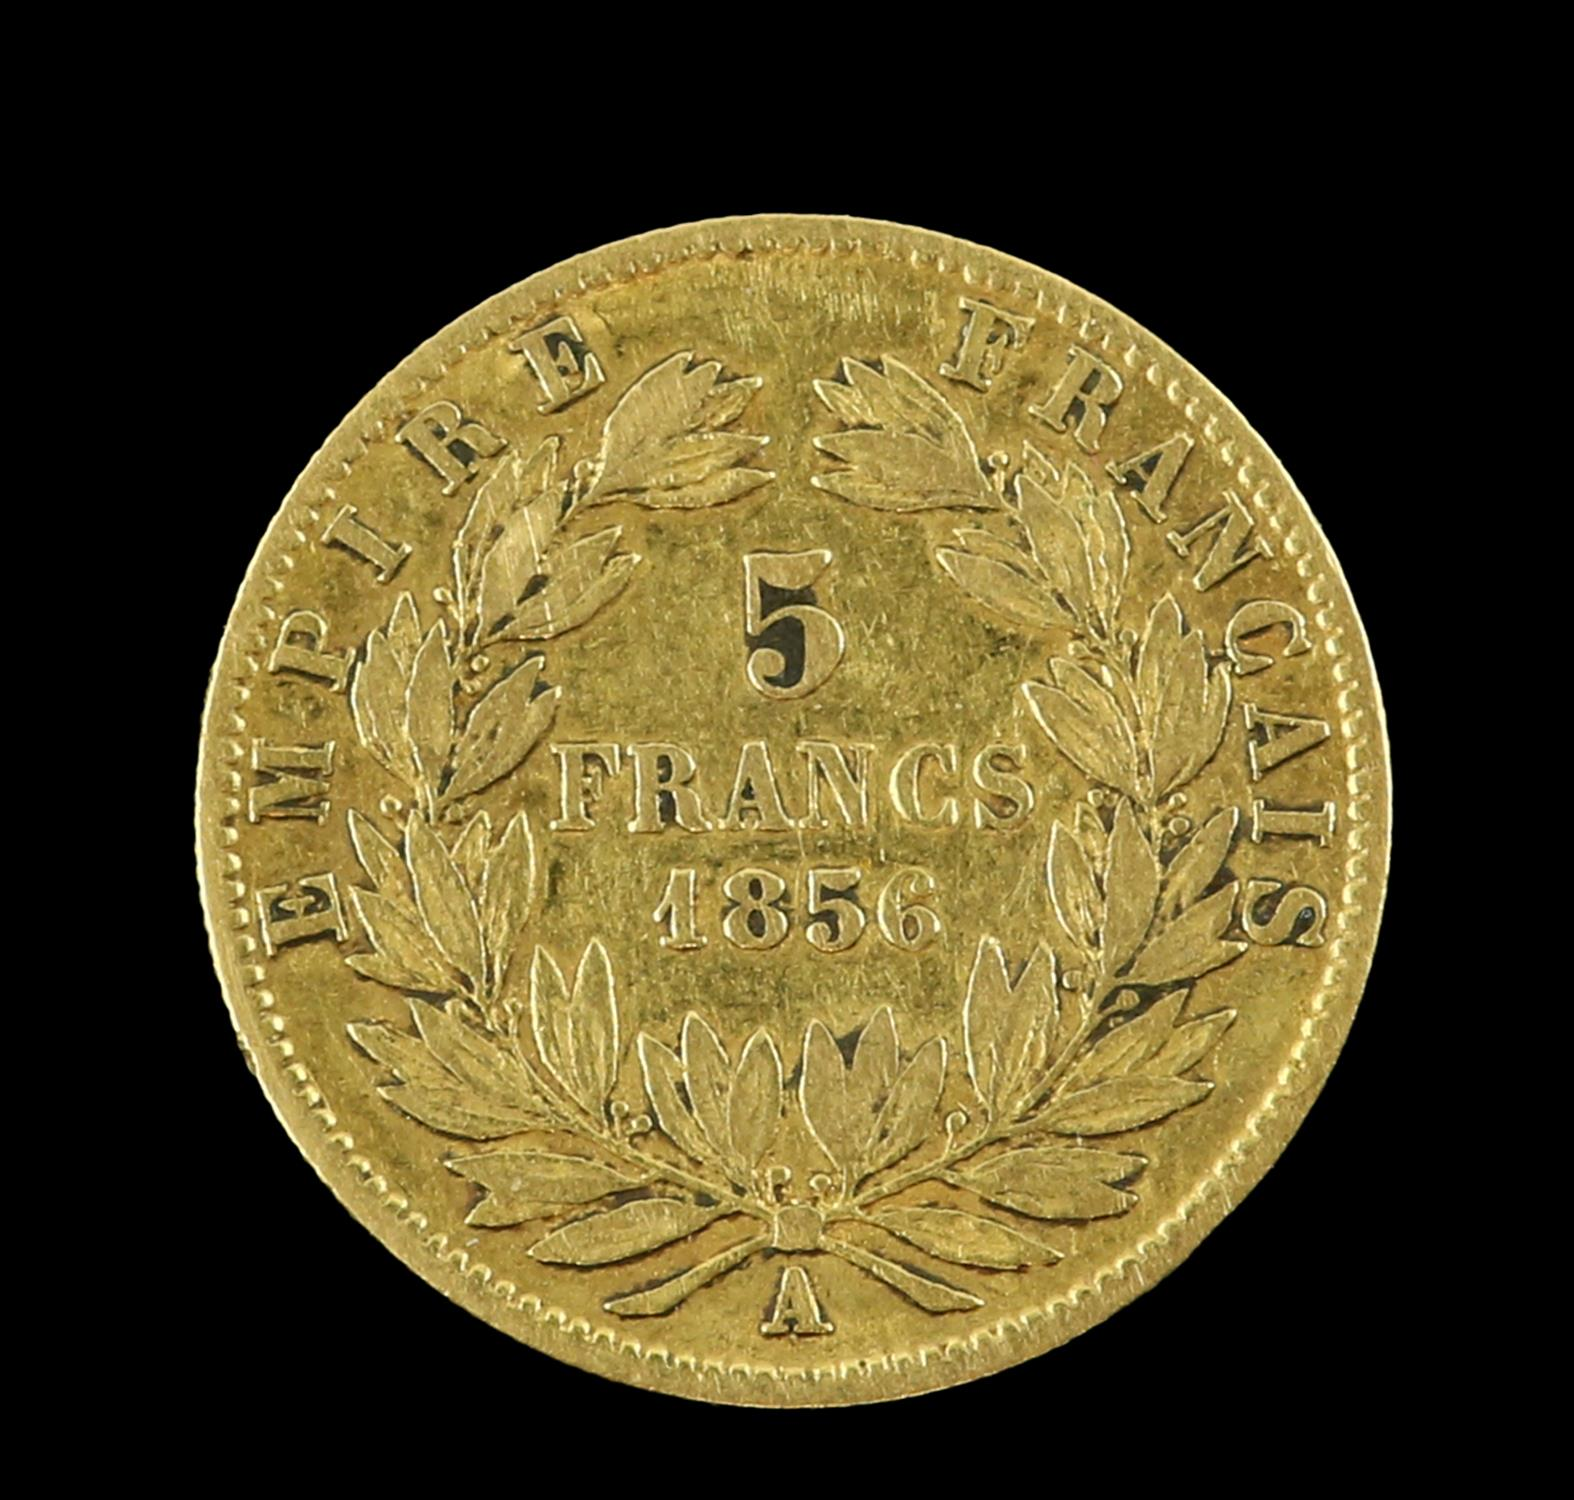 Napoleon III 1856 French 5 Franc gold coin